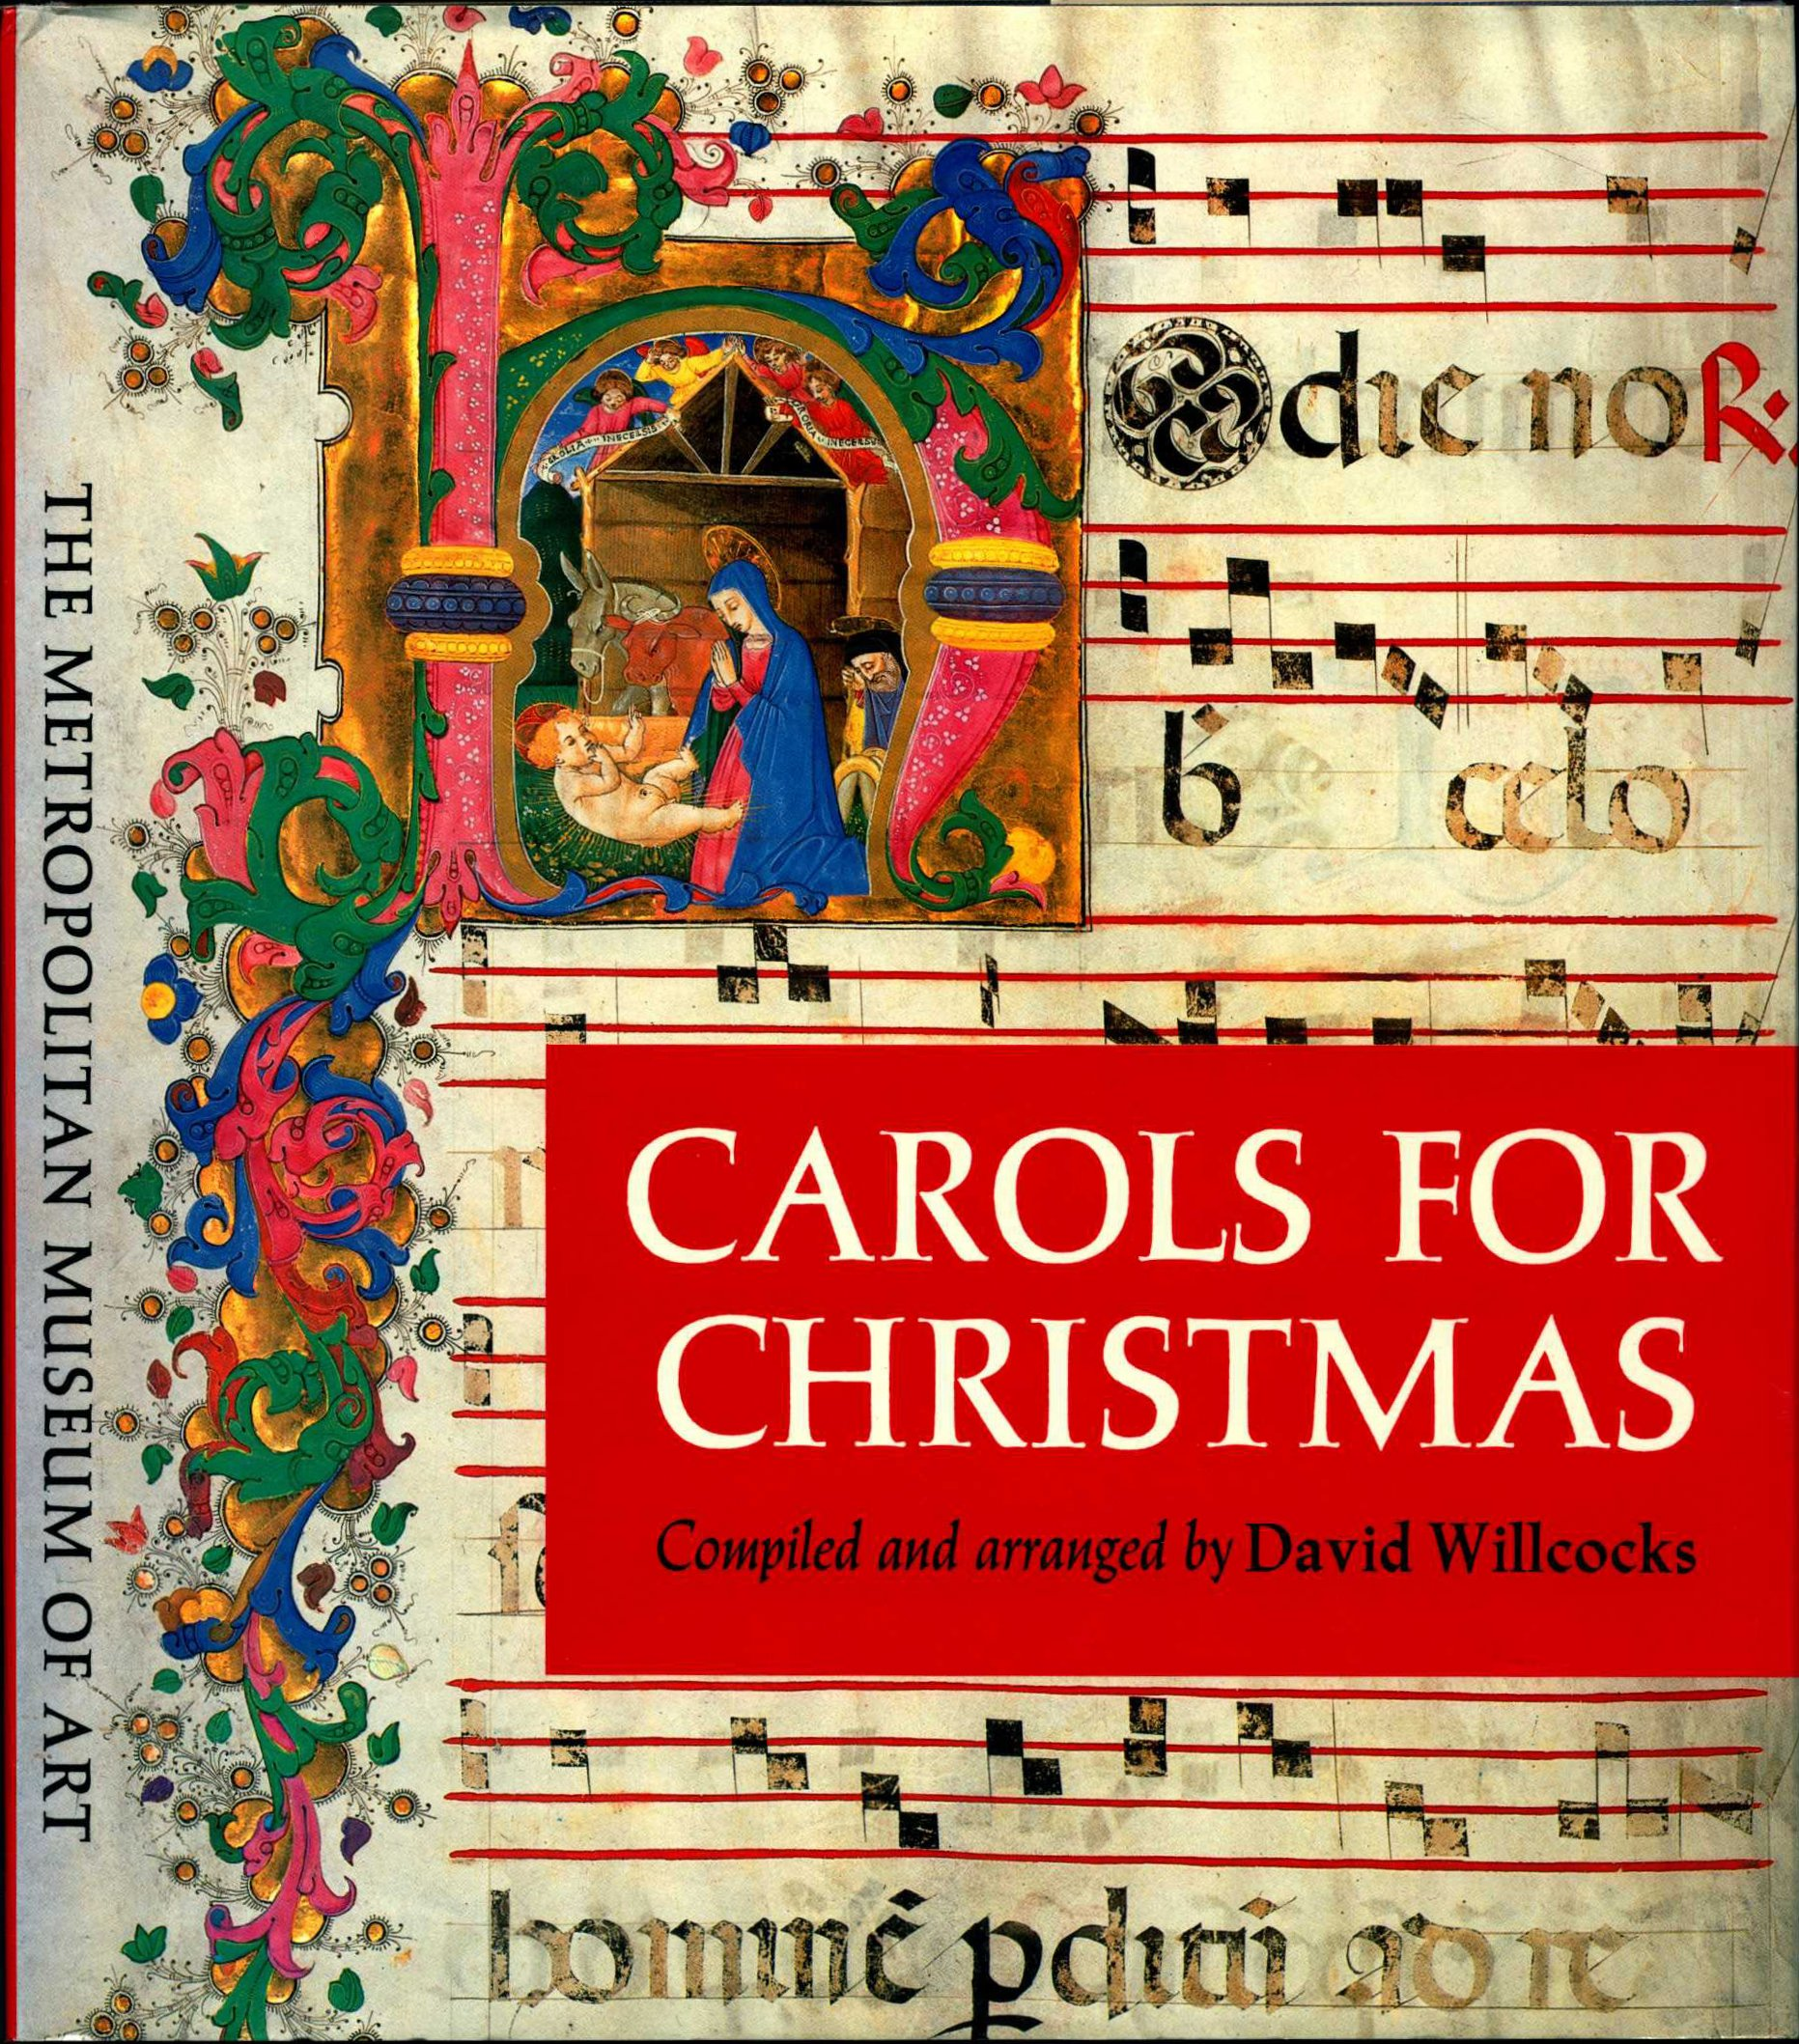 Carols for Christmas. London: Gollancz in association with the Metropolitan Museum of Art, New York, 1983.